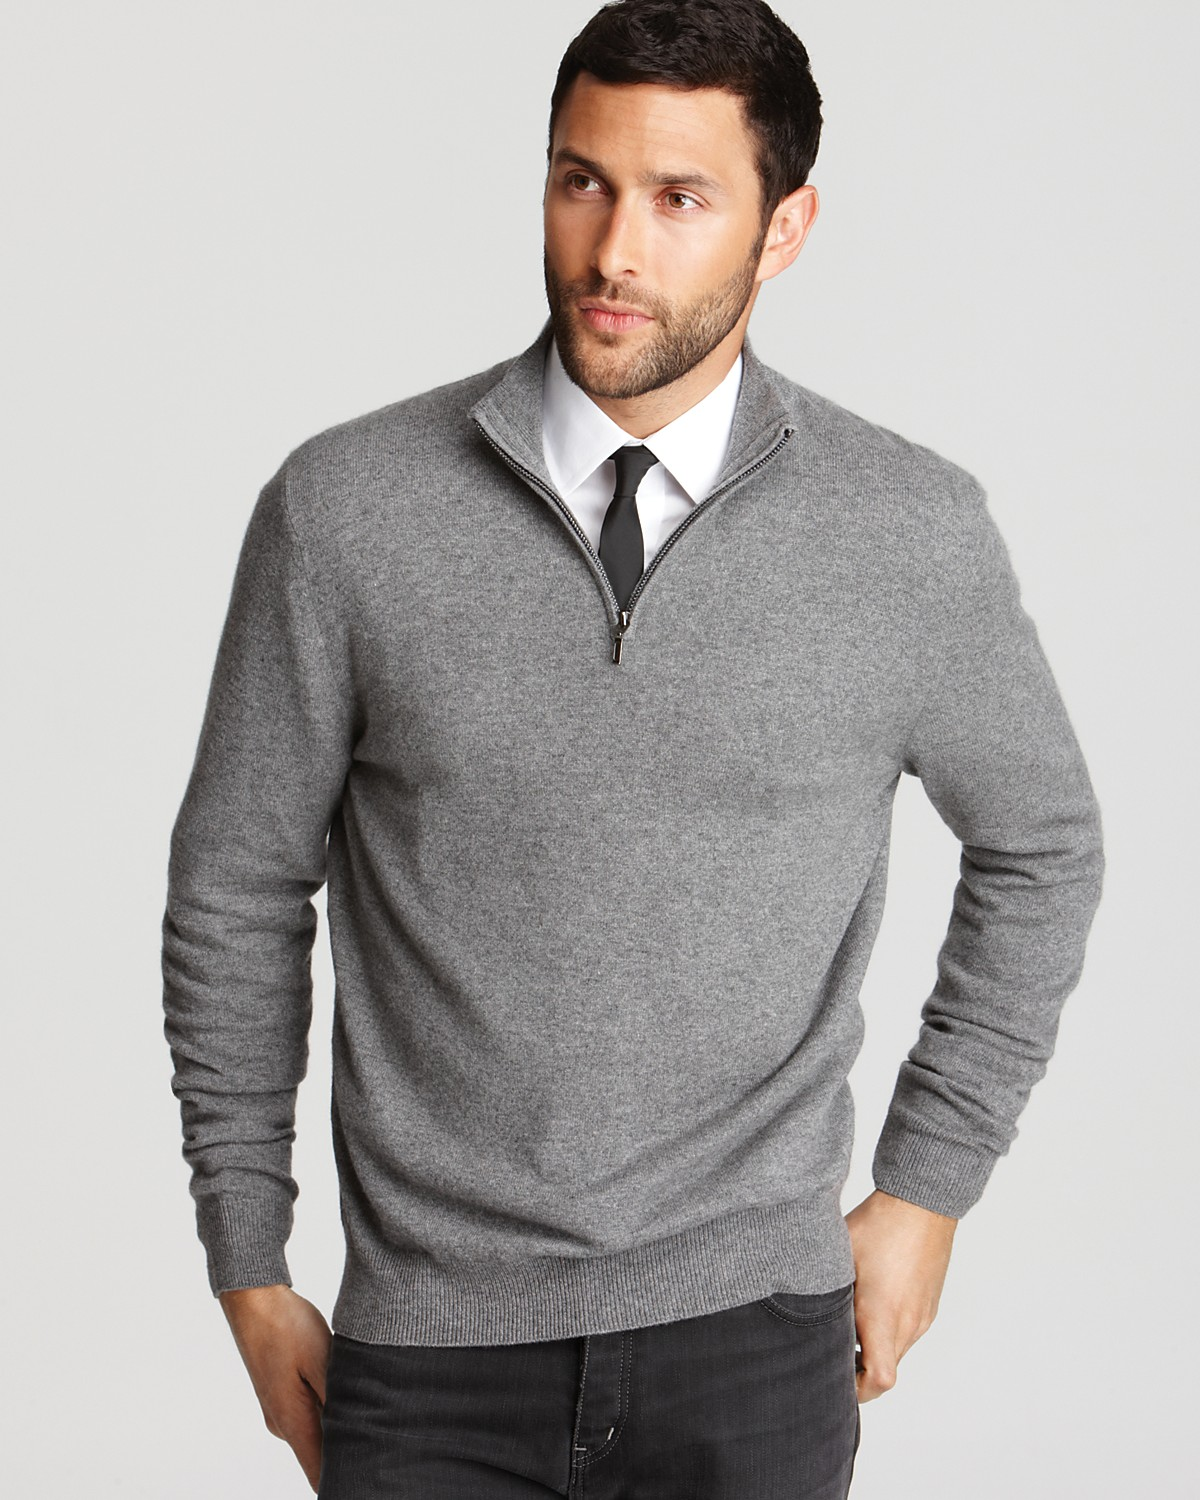 Sweaters on shirts for men for Mens sweater collared shirt